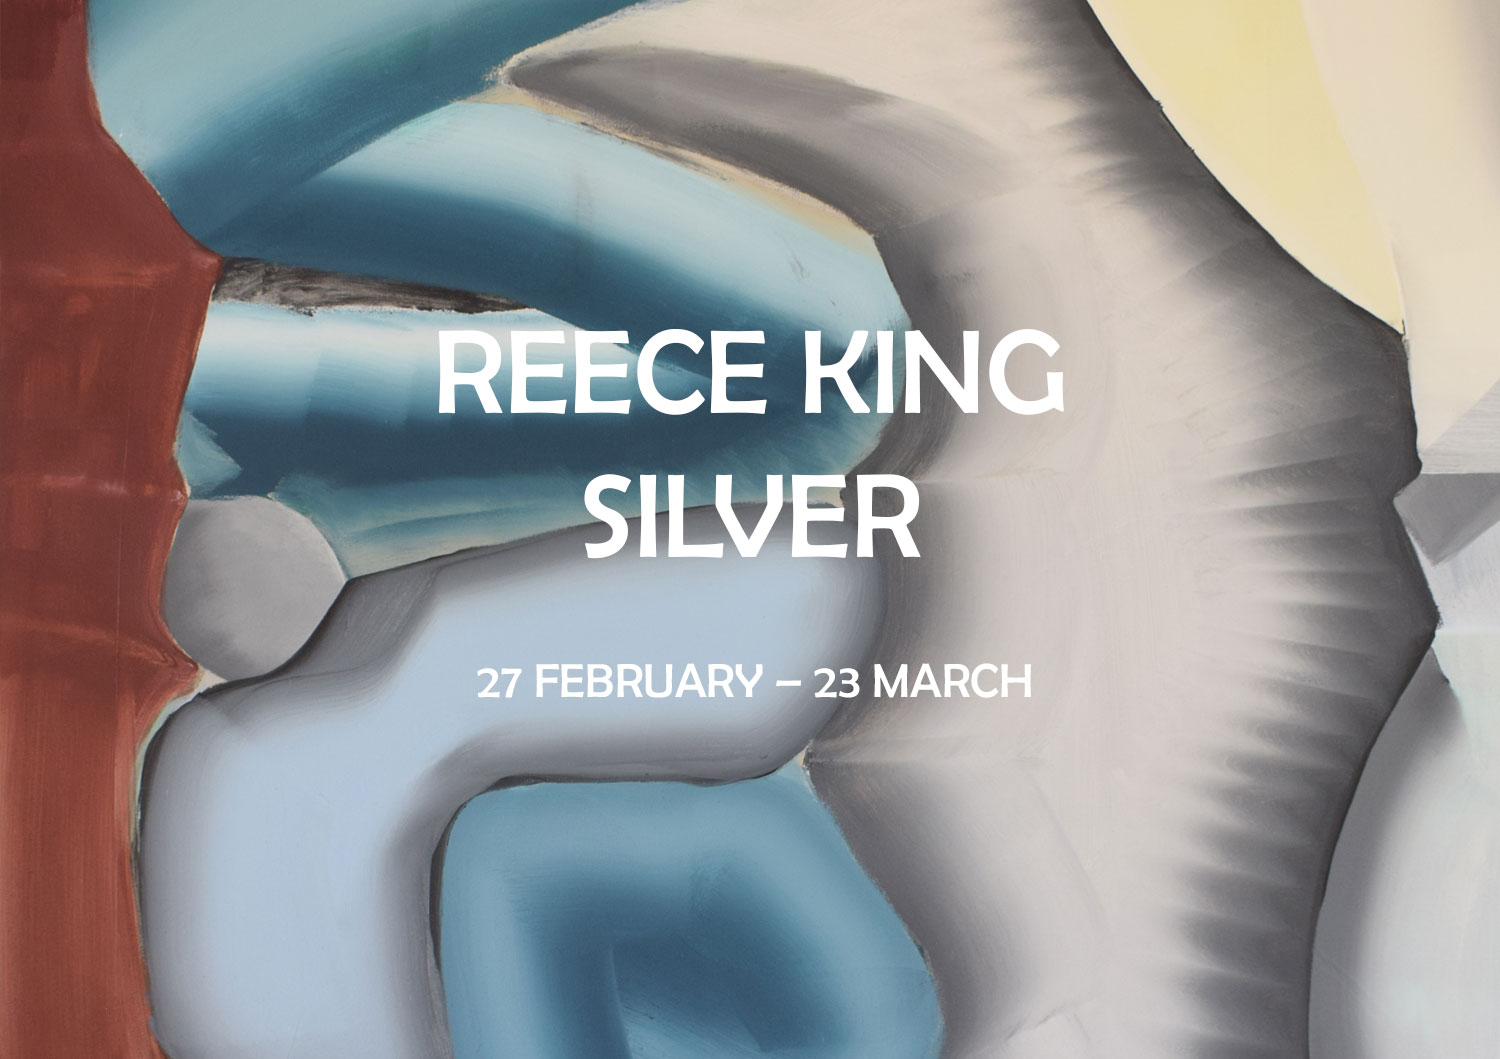 REECE KING   : SILVER 27 FEBRUARY - 23 MARCH